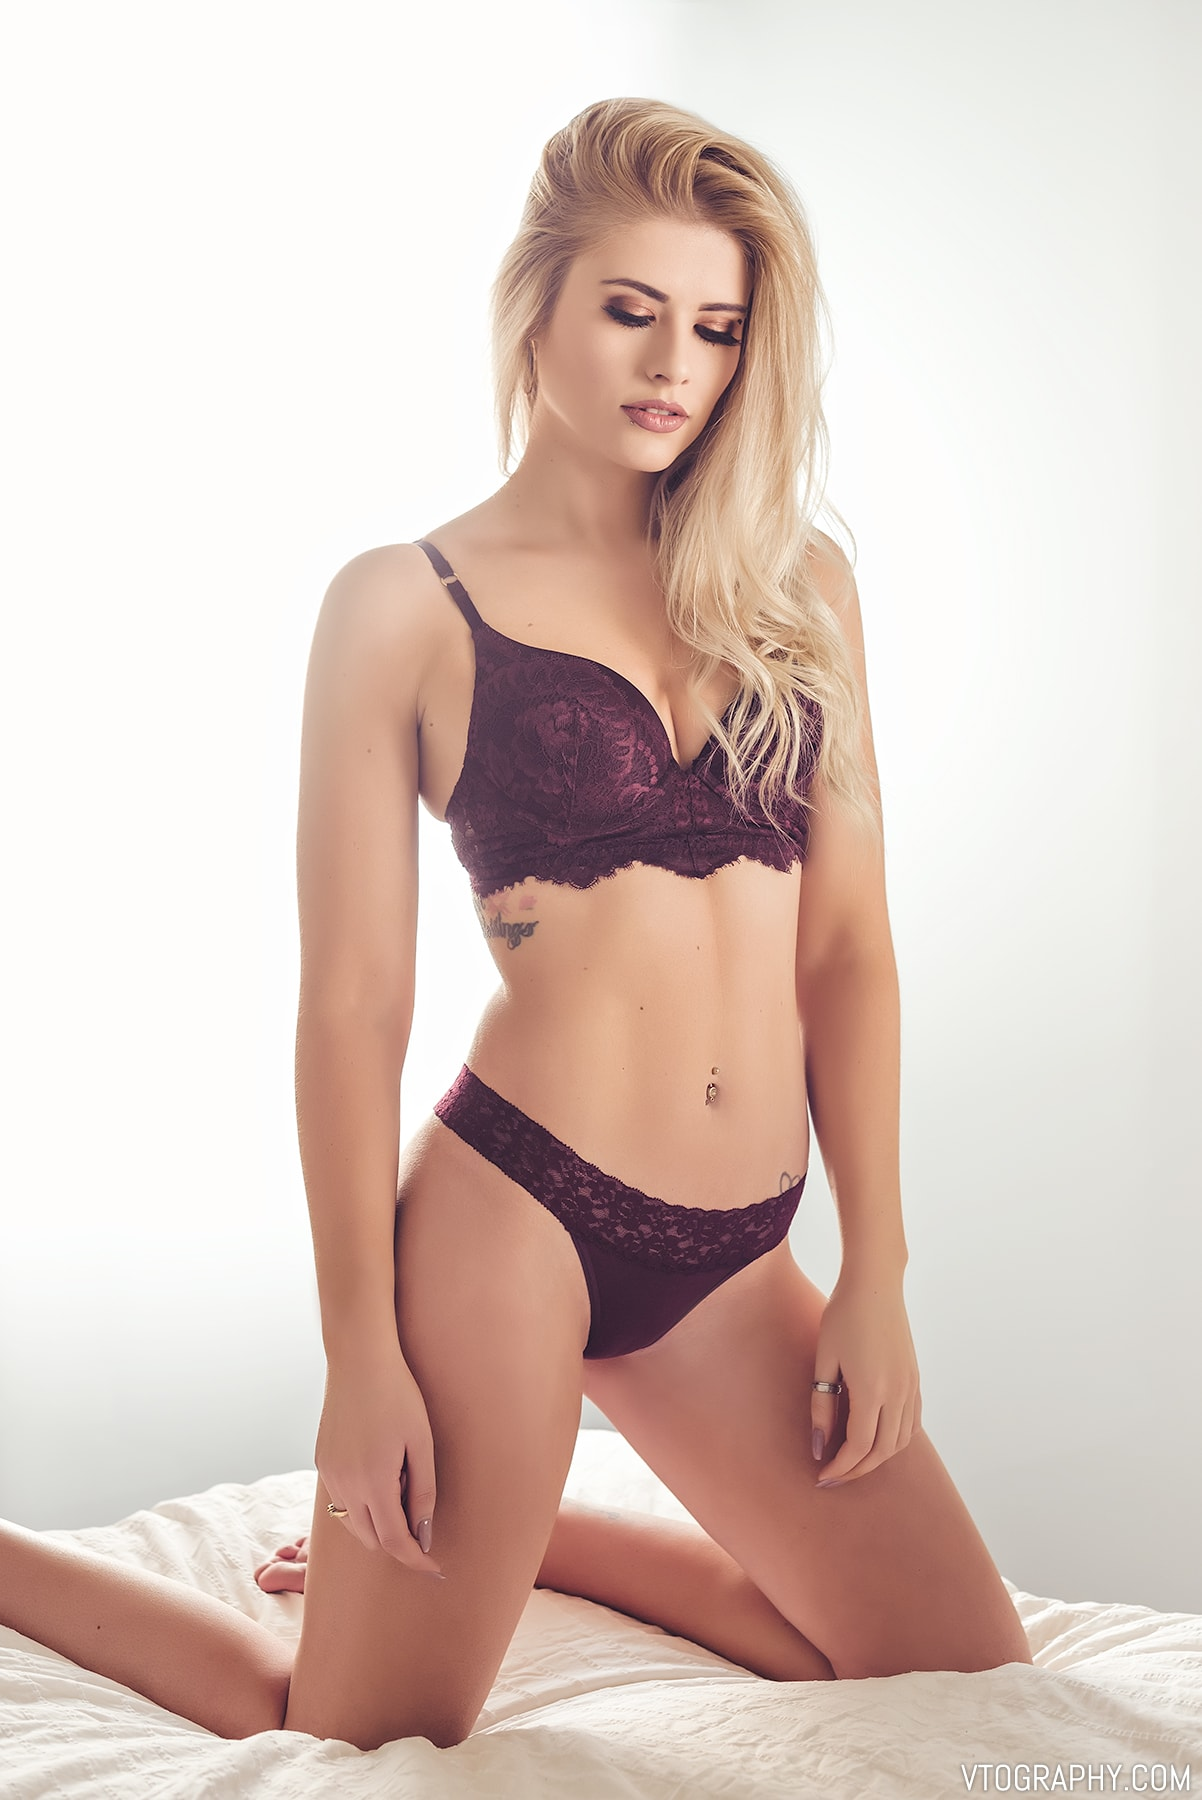 Sami in lingerie from La Senza